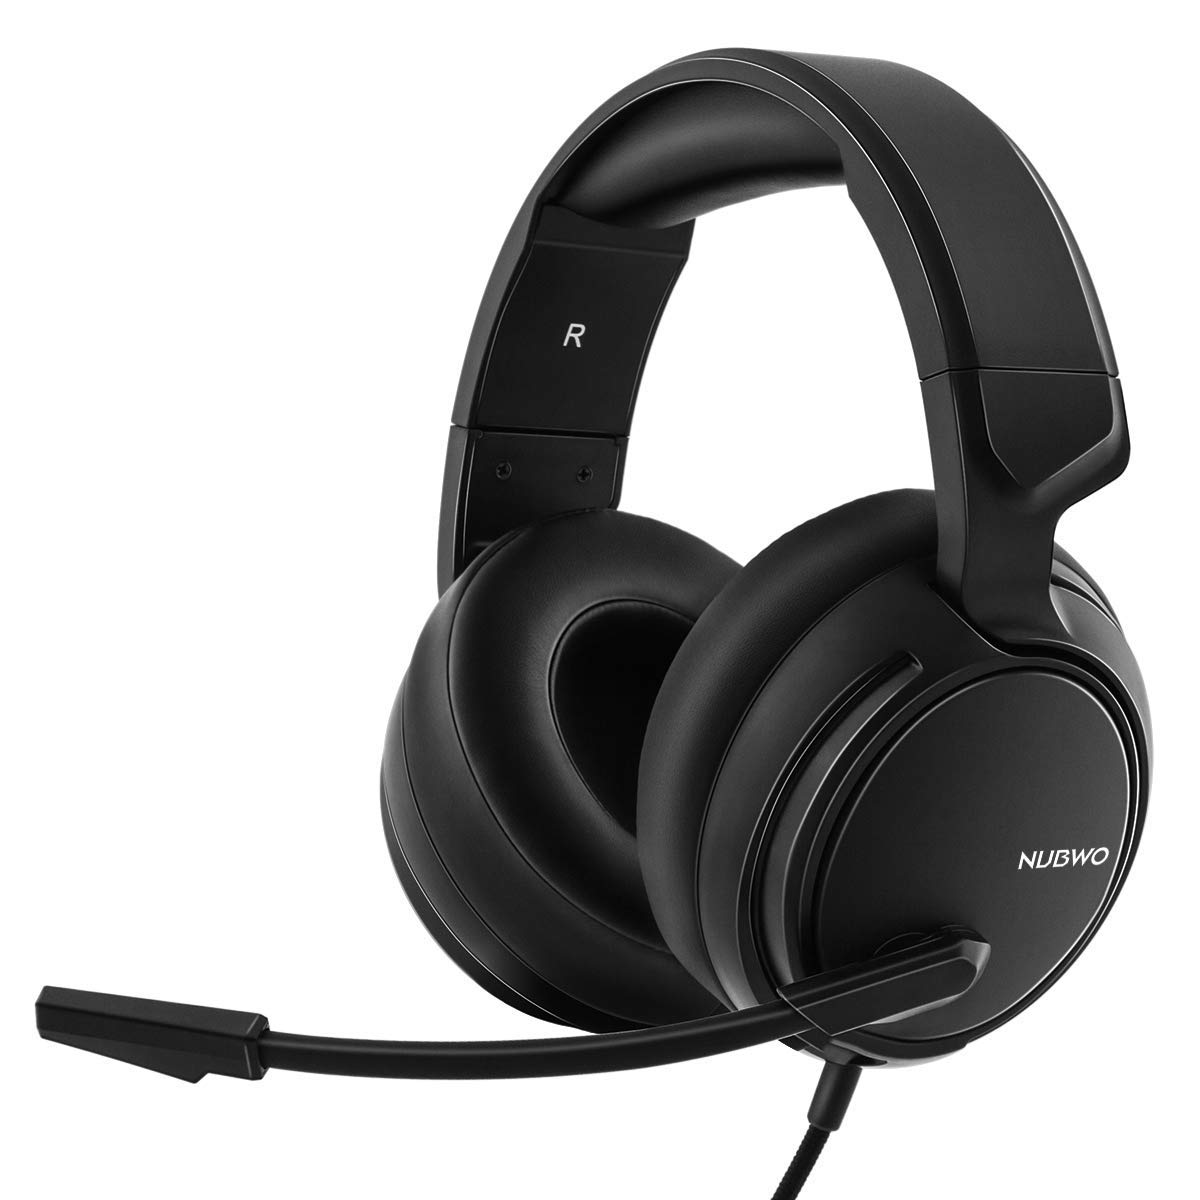 NUBWO N12 Surround Sound Stereo Gaming Headset with Mic for PlayStation 4, PS4, Xbox One Controller, Nintendo Switch Lite, PC, Laptop, Android IOS Phone